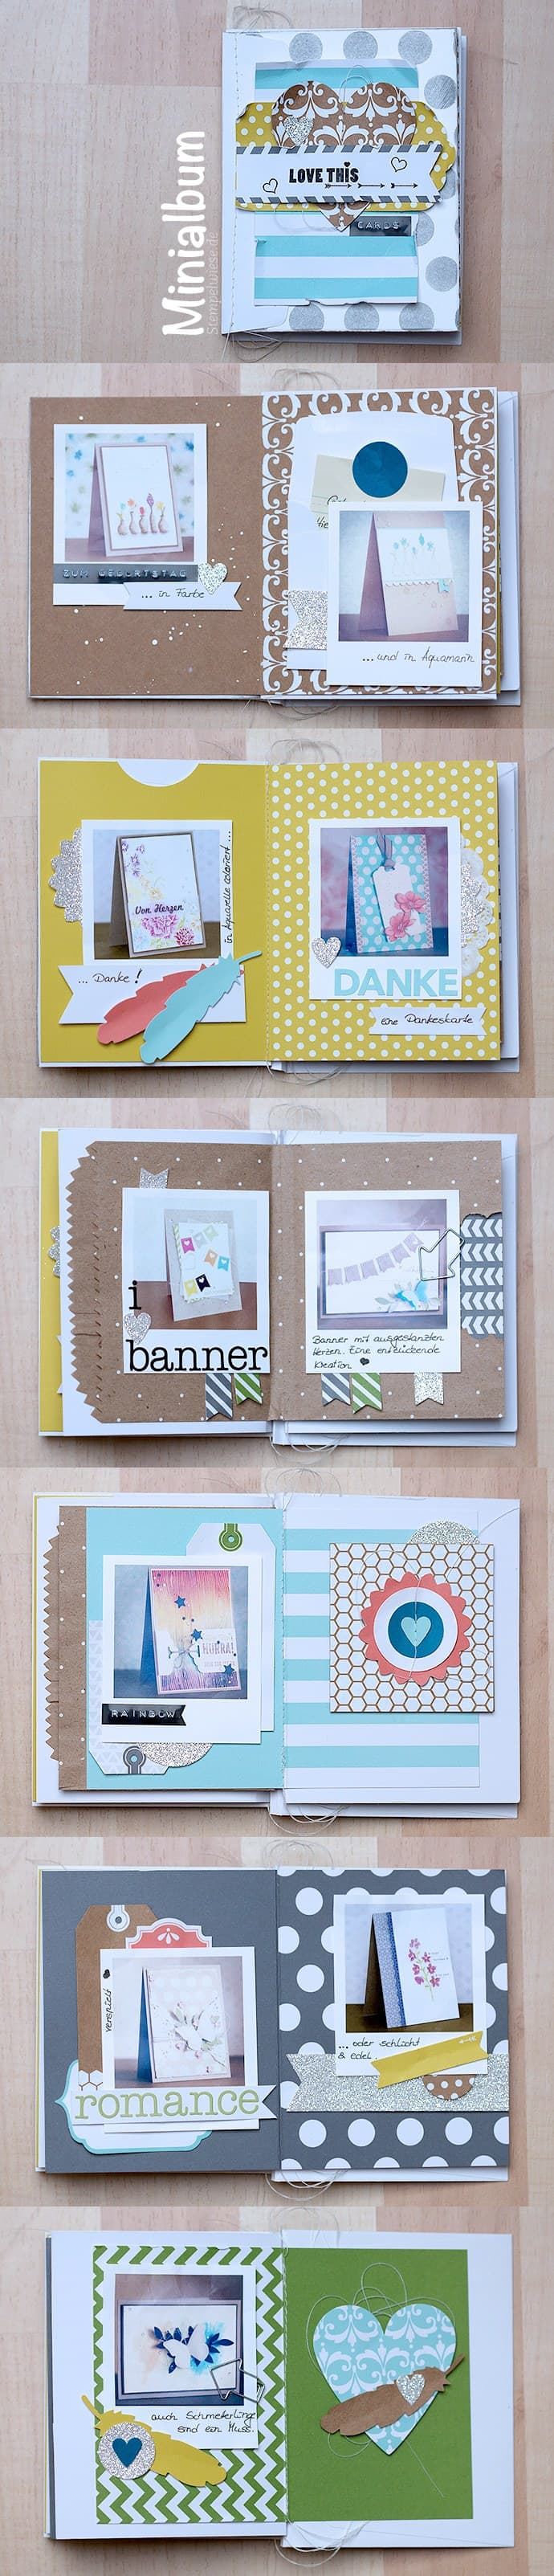 Stampin' Up! - Minialbum - Everyday Occasions - Kartenset ❤ Stempelwiese